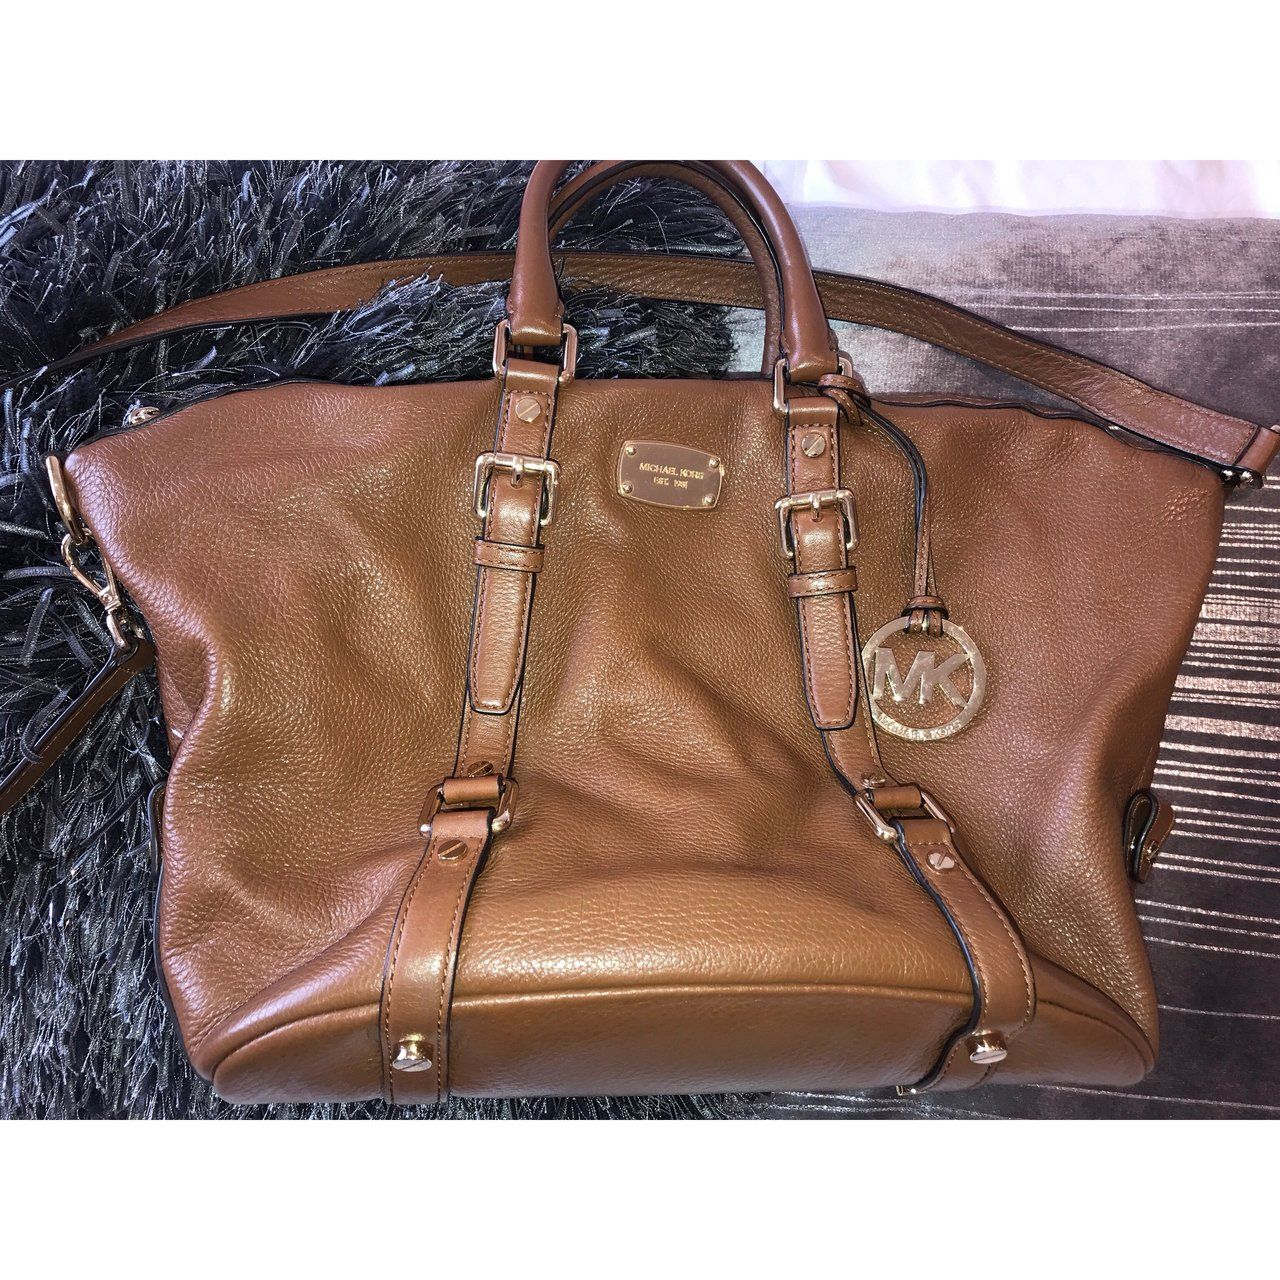 676828c7d94c Brown/tan Michael kors bag with long strap and handle but as - Depop ...